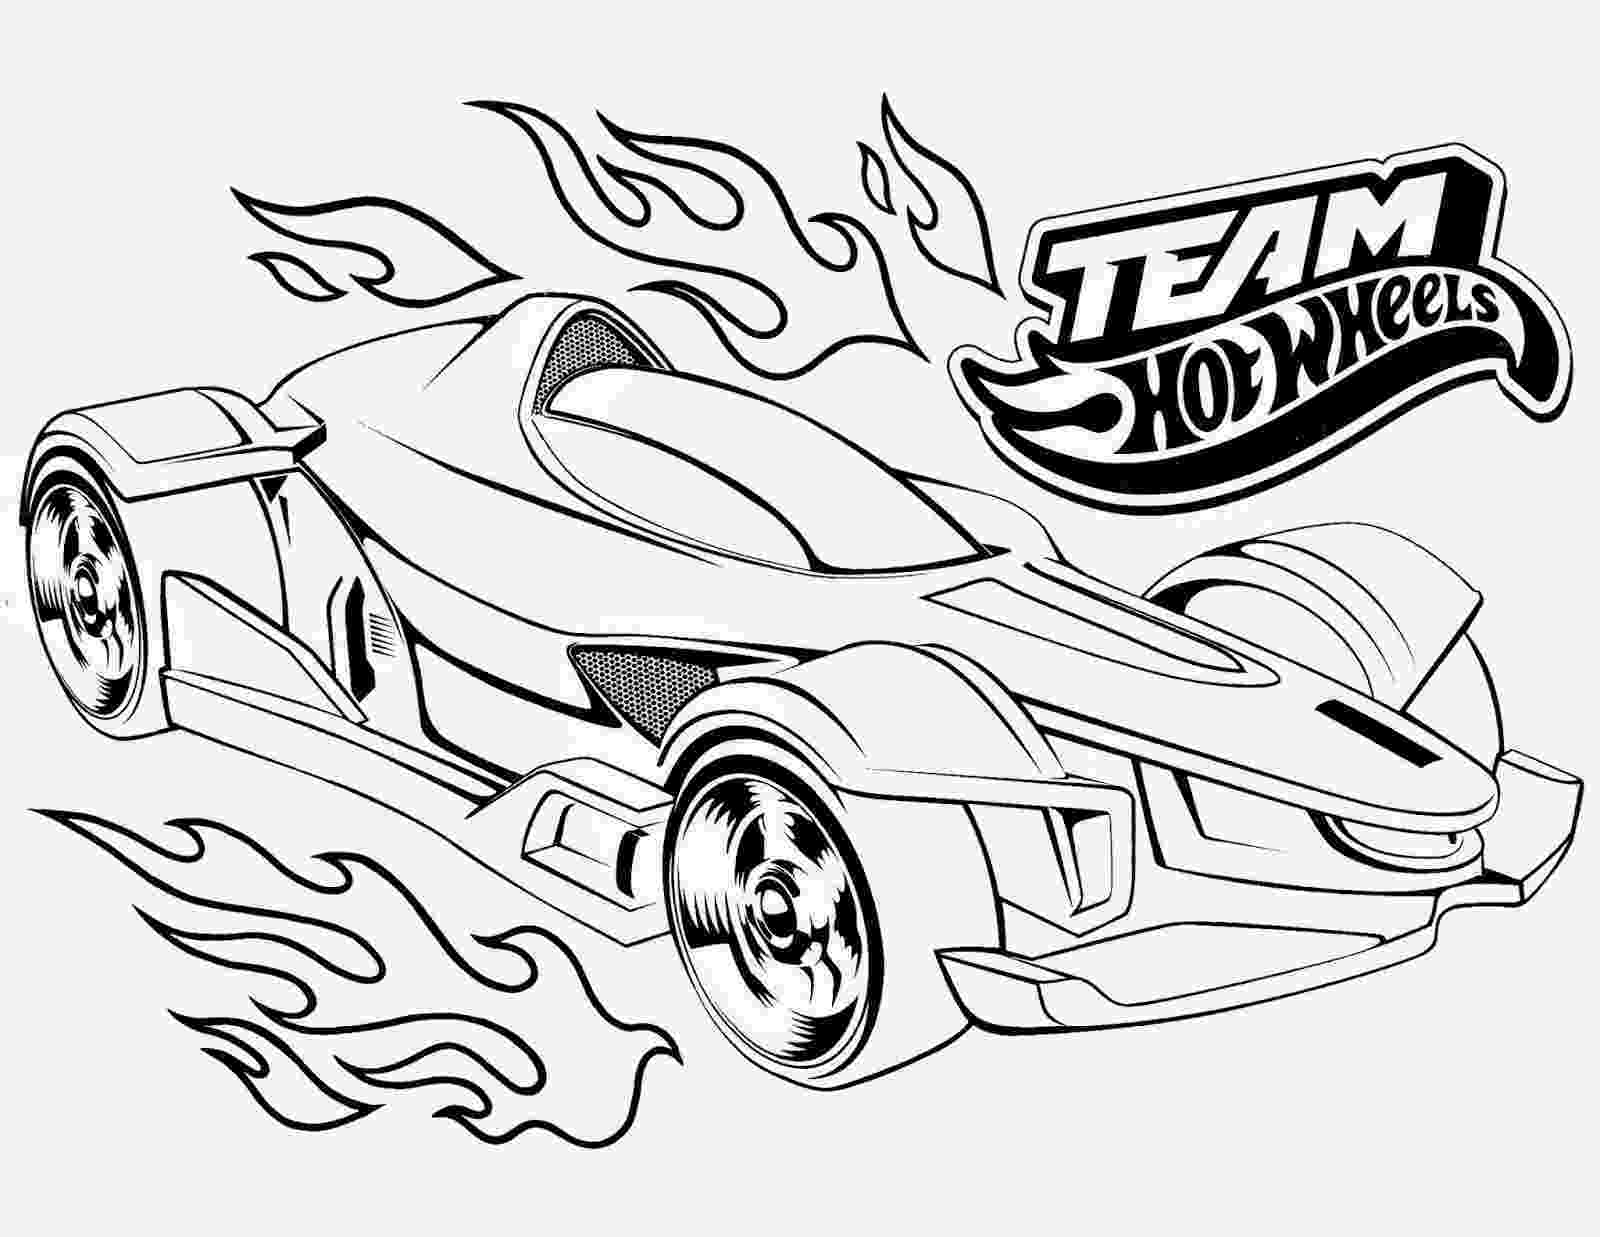 hot wheels images to print hot wheels coloring pages games 3 hot wheels birthday images hot to print wheels